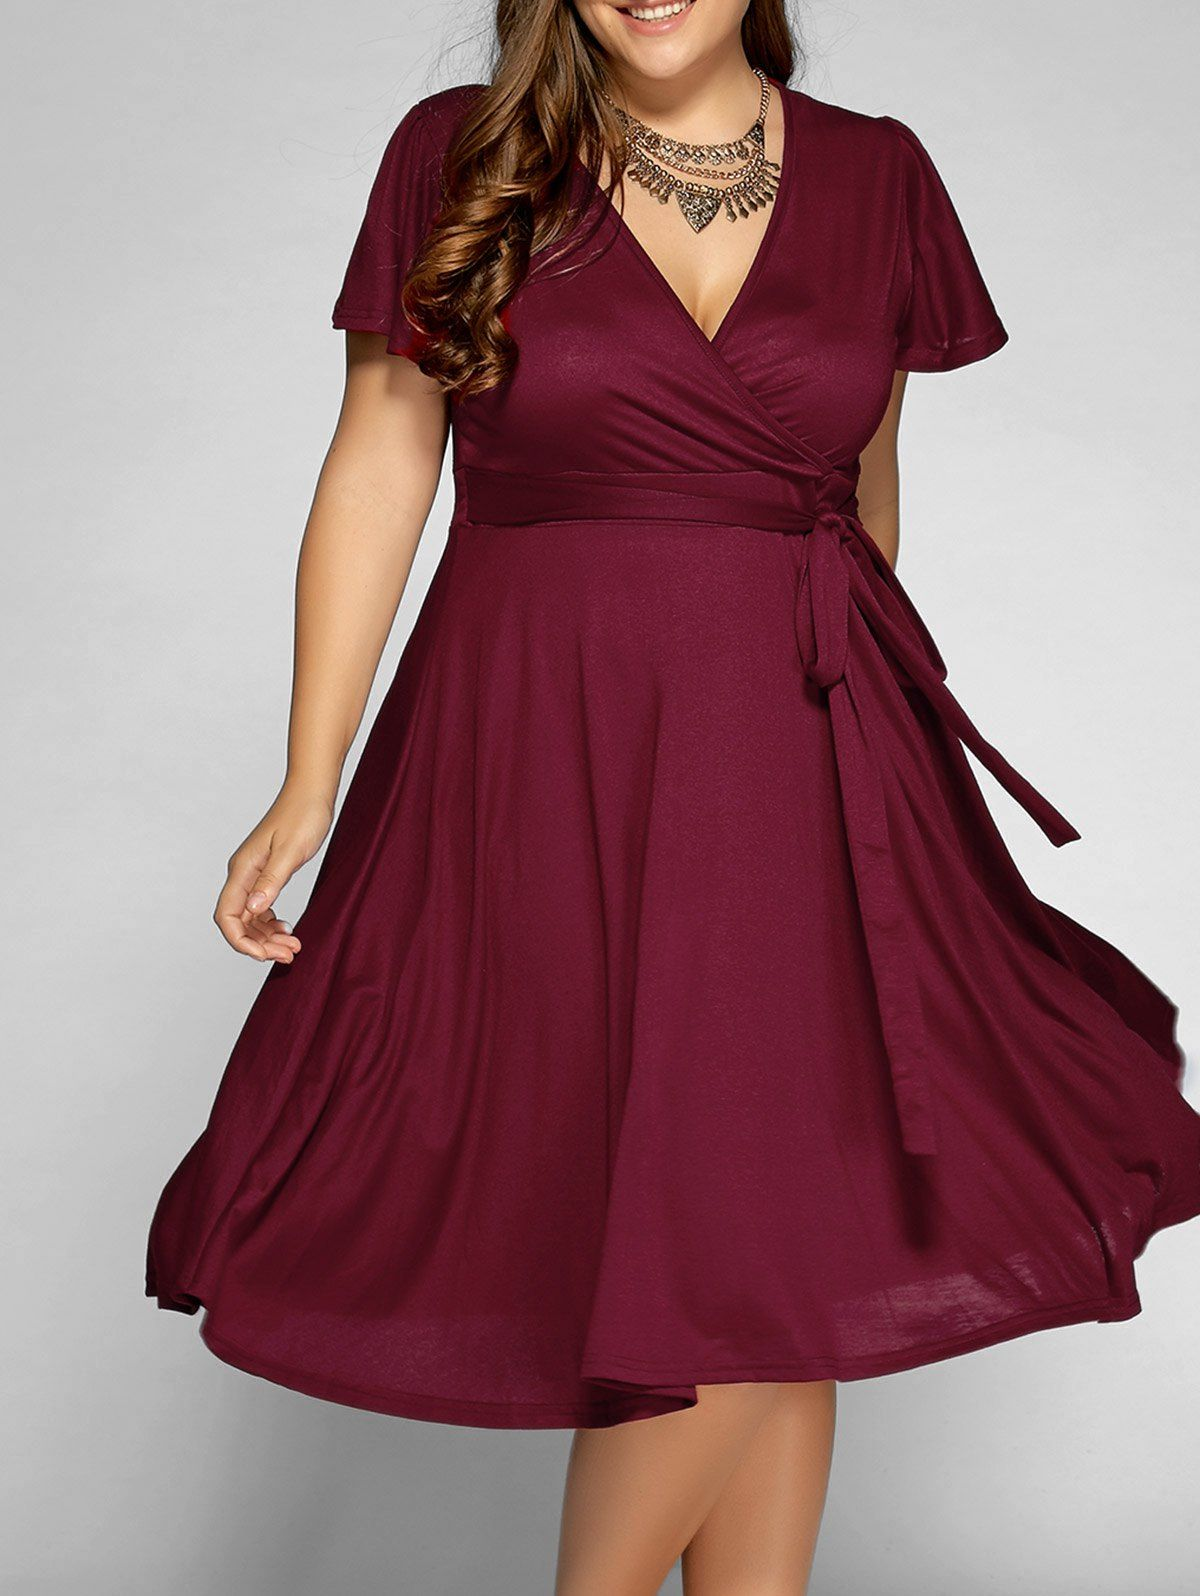 14 03 For Front Tie Swing Surplice Plus Size Dress In Wine Red Sammydress